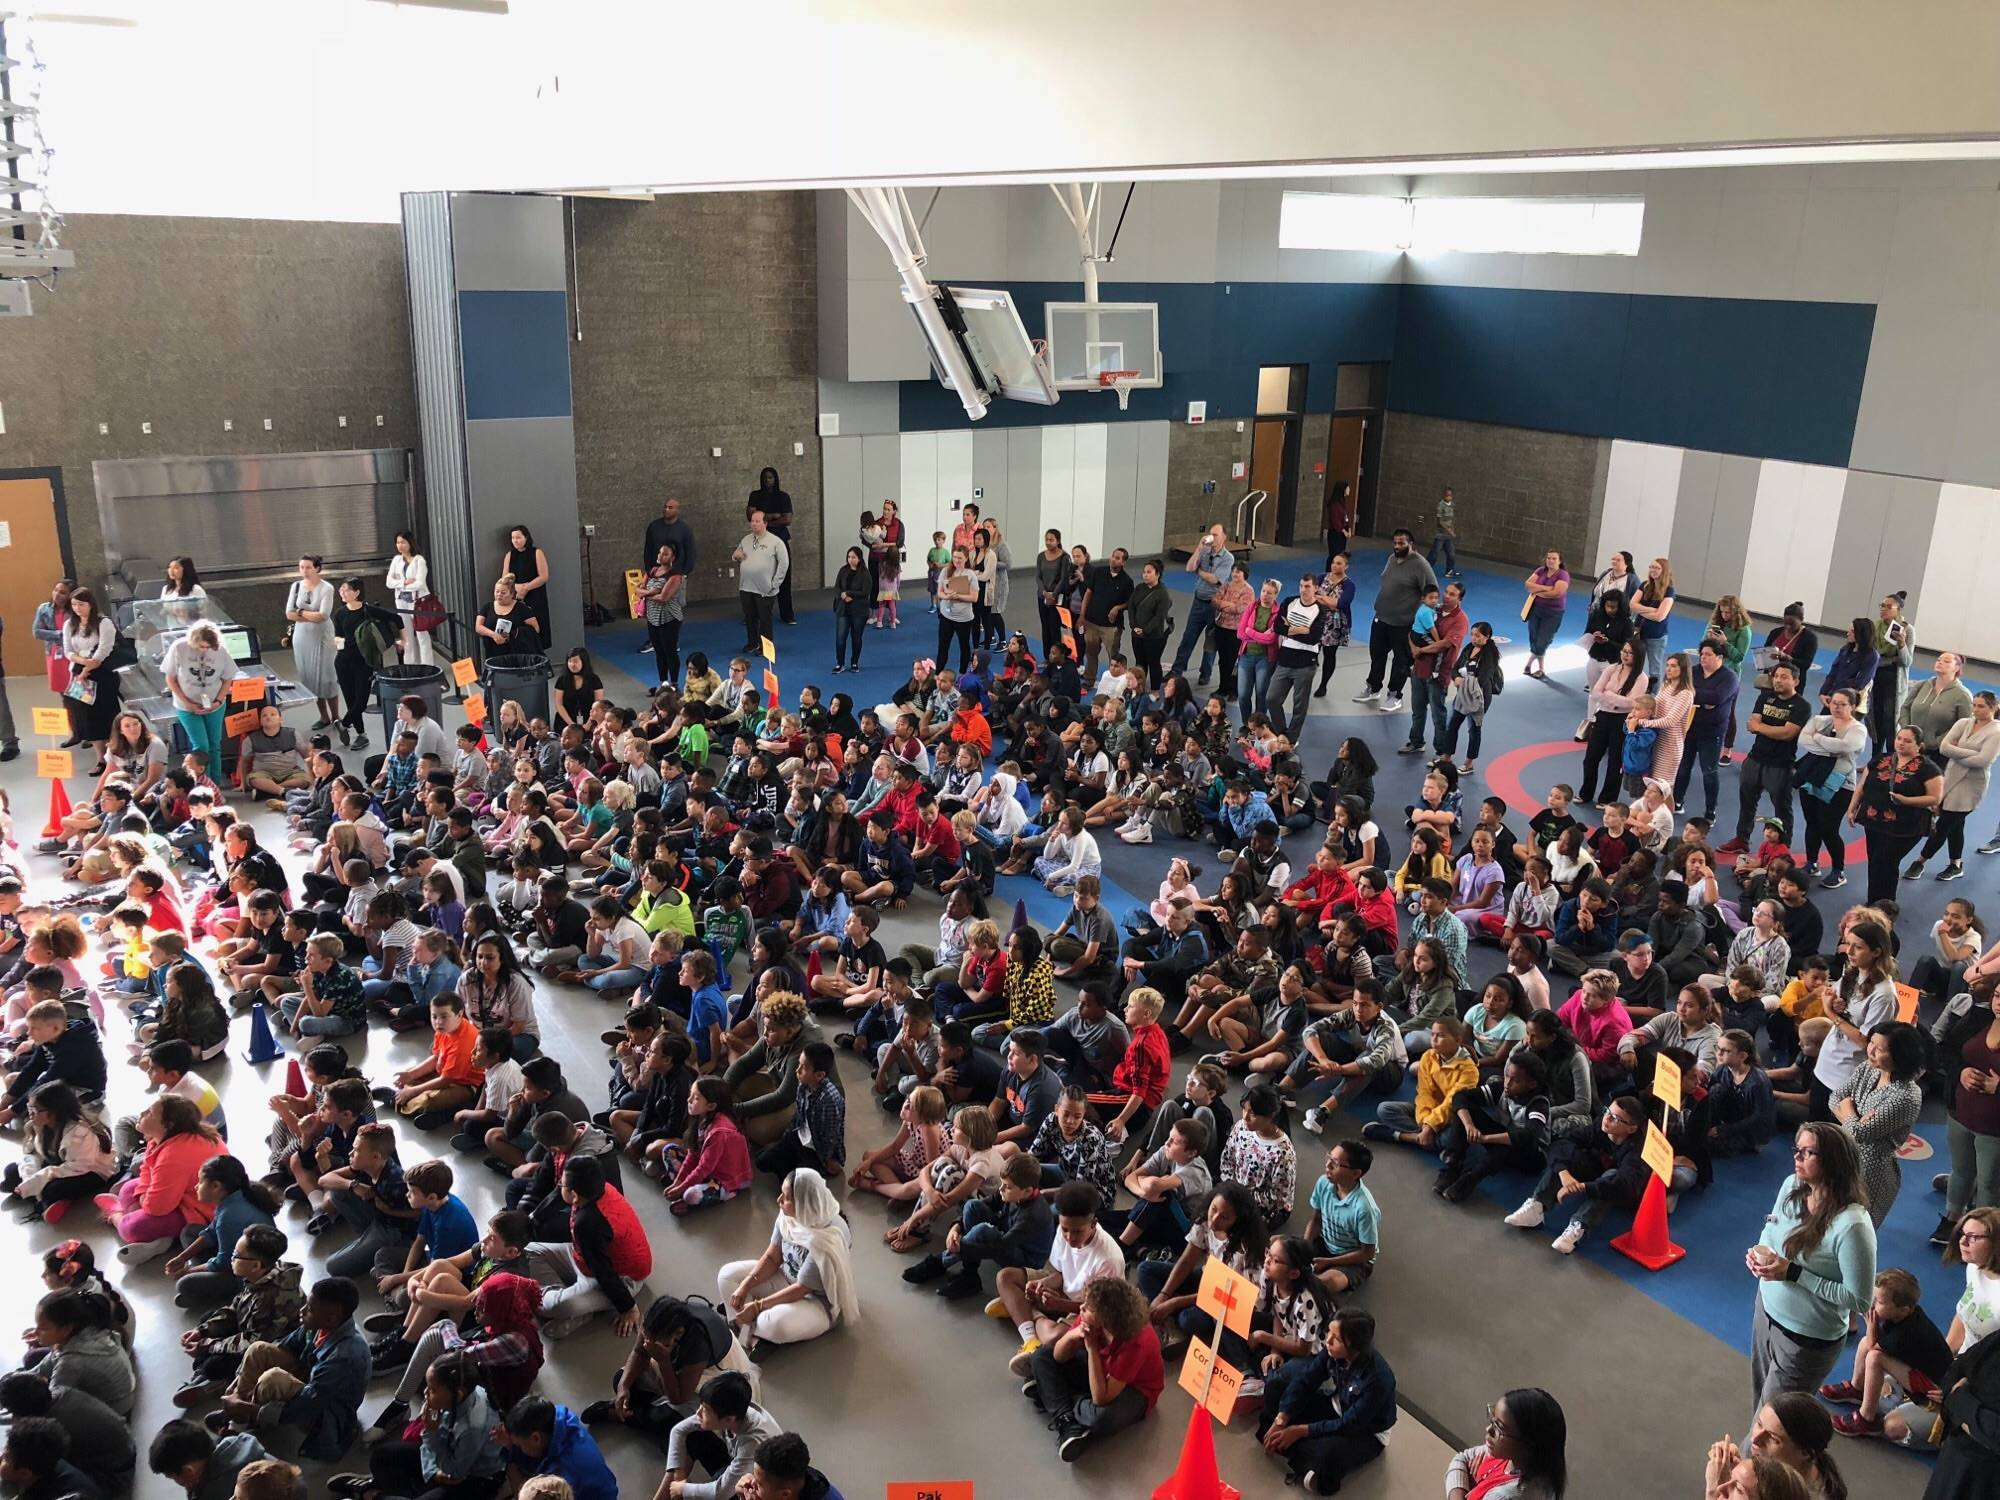 Photo courtesy of Angela Bogan: Sartori Elementary School's first day assembly